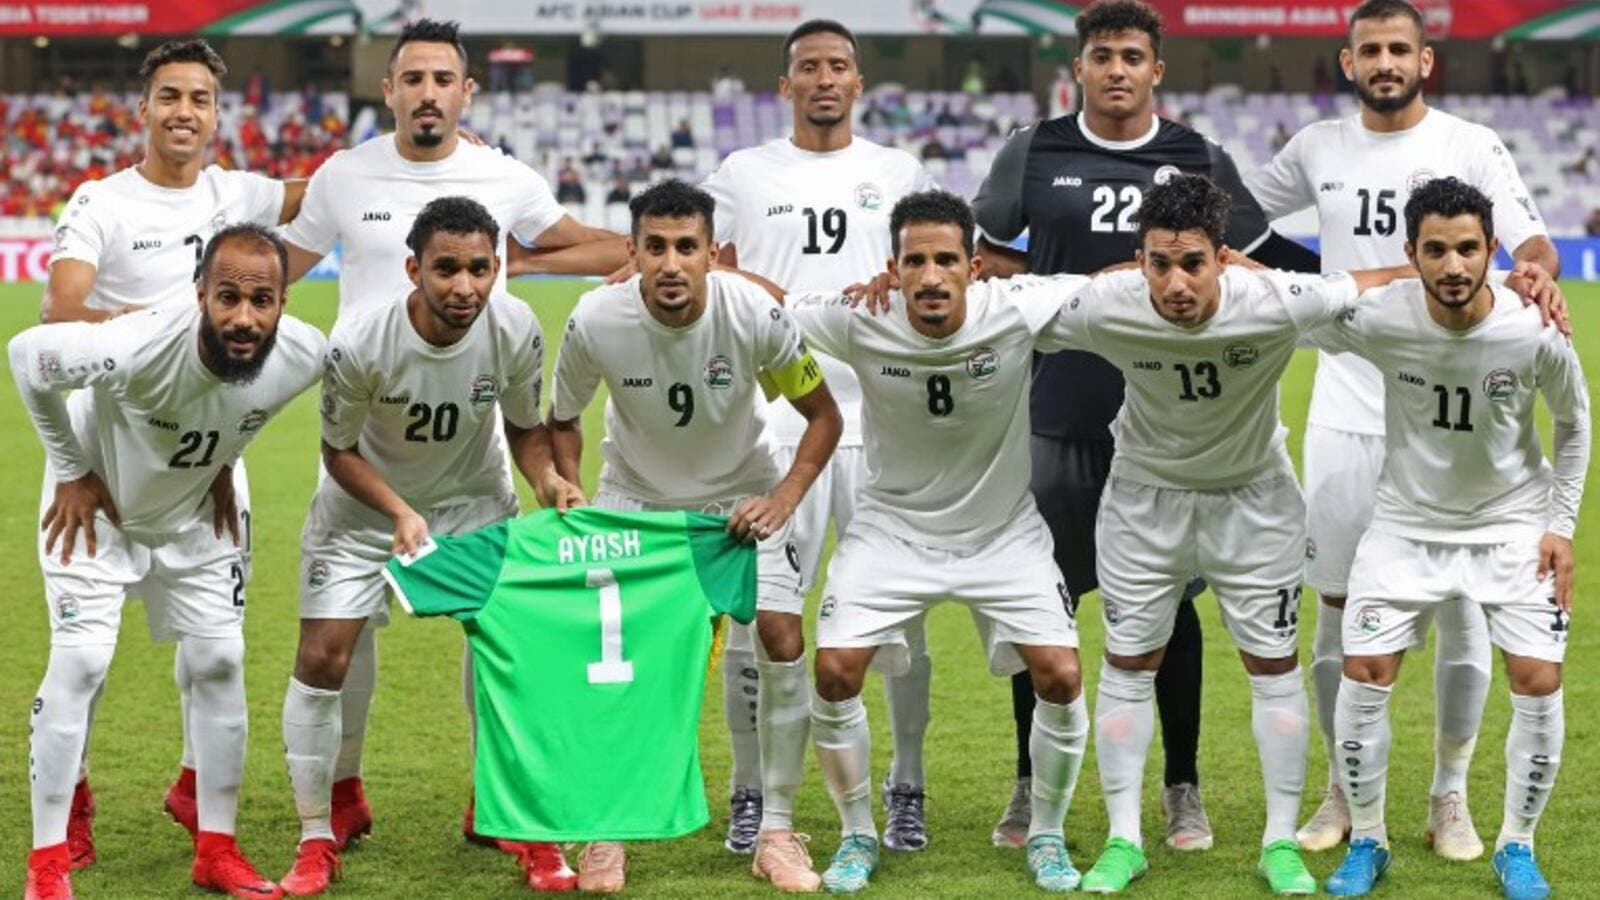 There has been no league in Yemen for the past four seasons and it's nothing short of miraculous that the nation both qualified for and were competitive at their very first Asian Cup